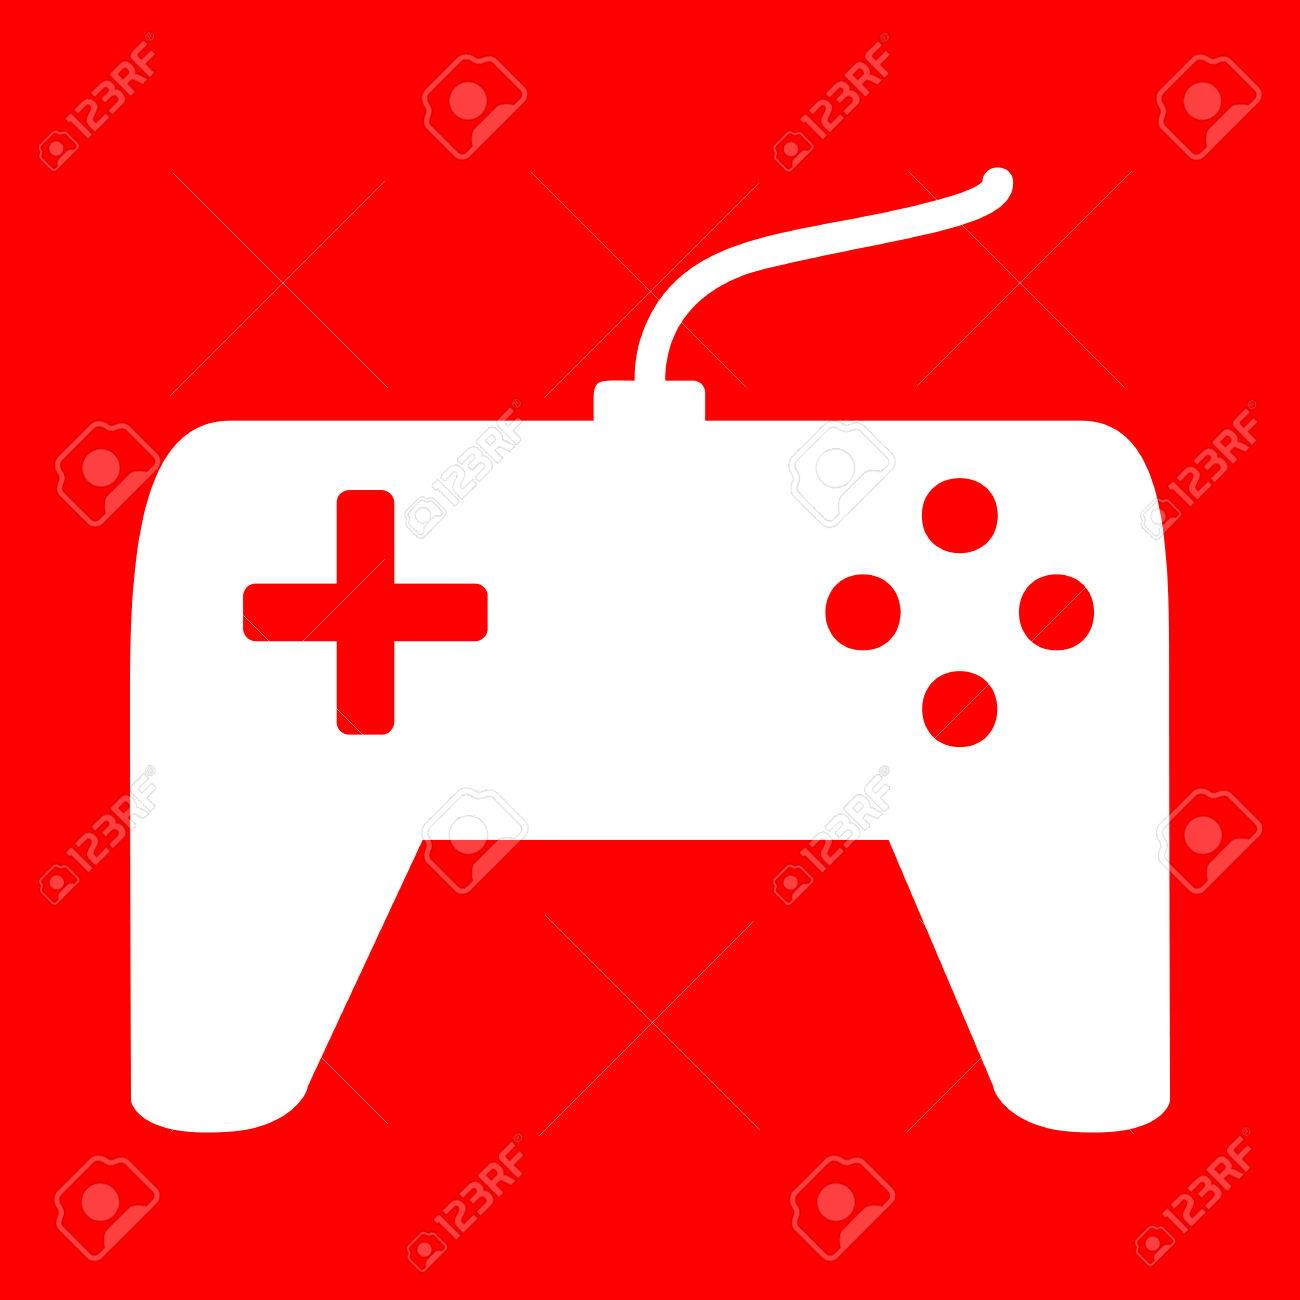 Joystick Simple Sign White Icon On Red Background Royalty 1300x1300